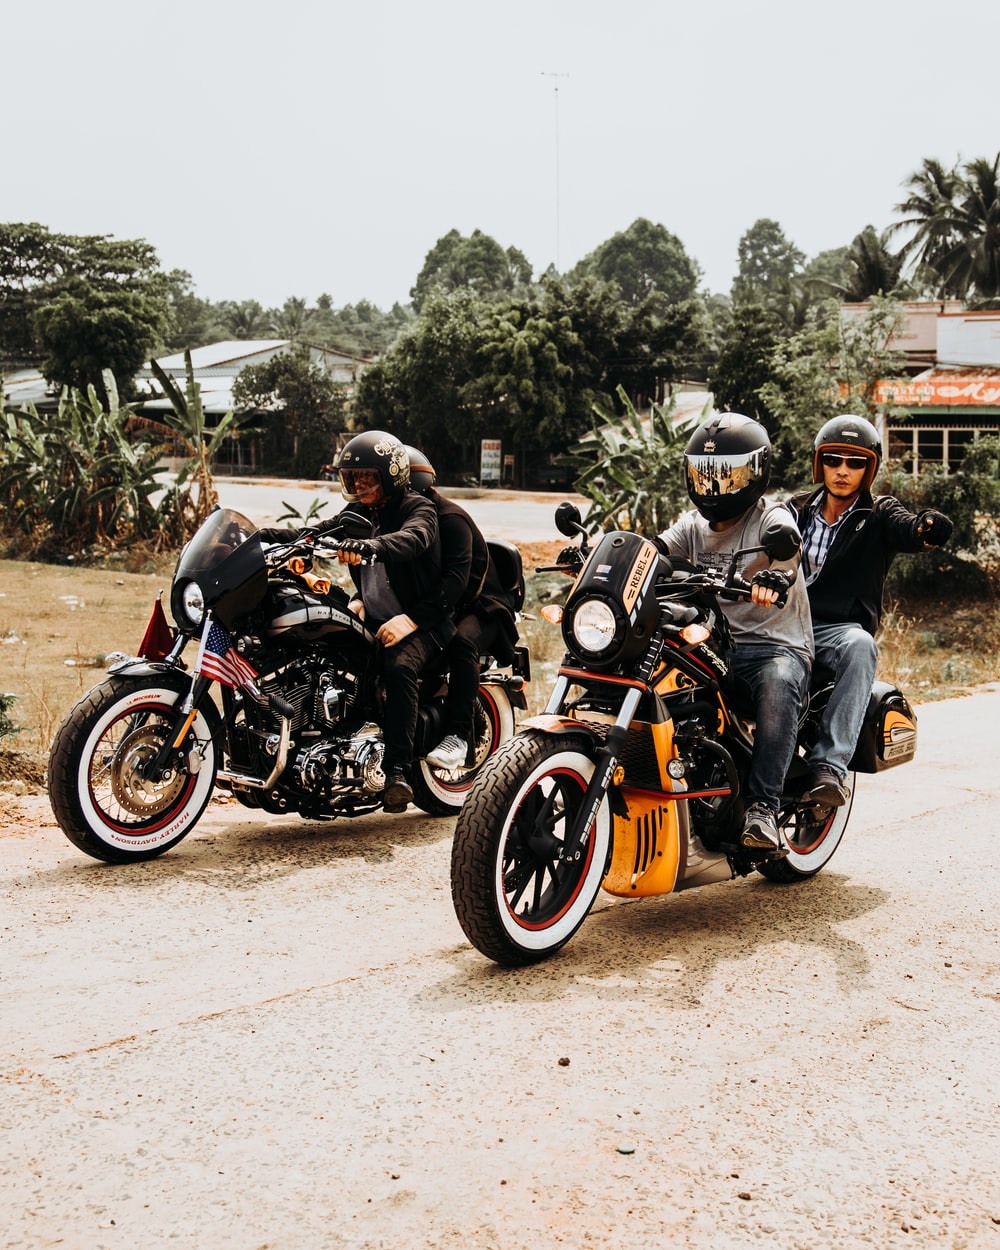 people on motorcycles